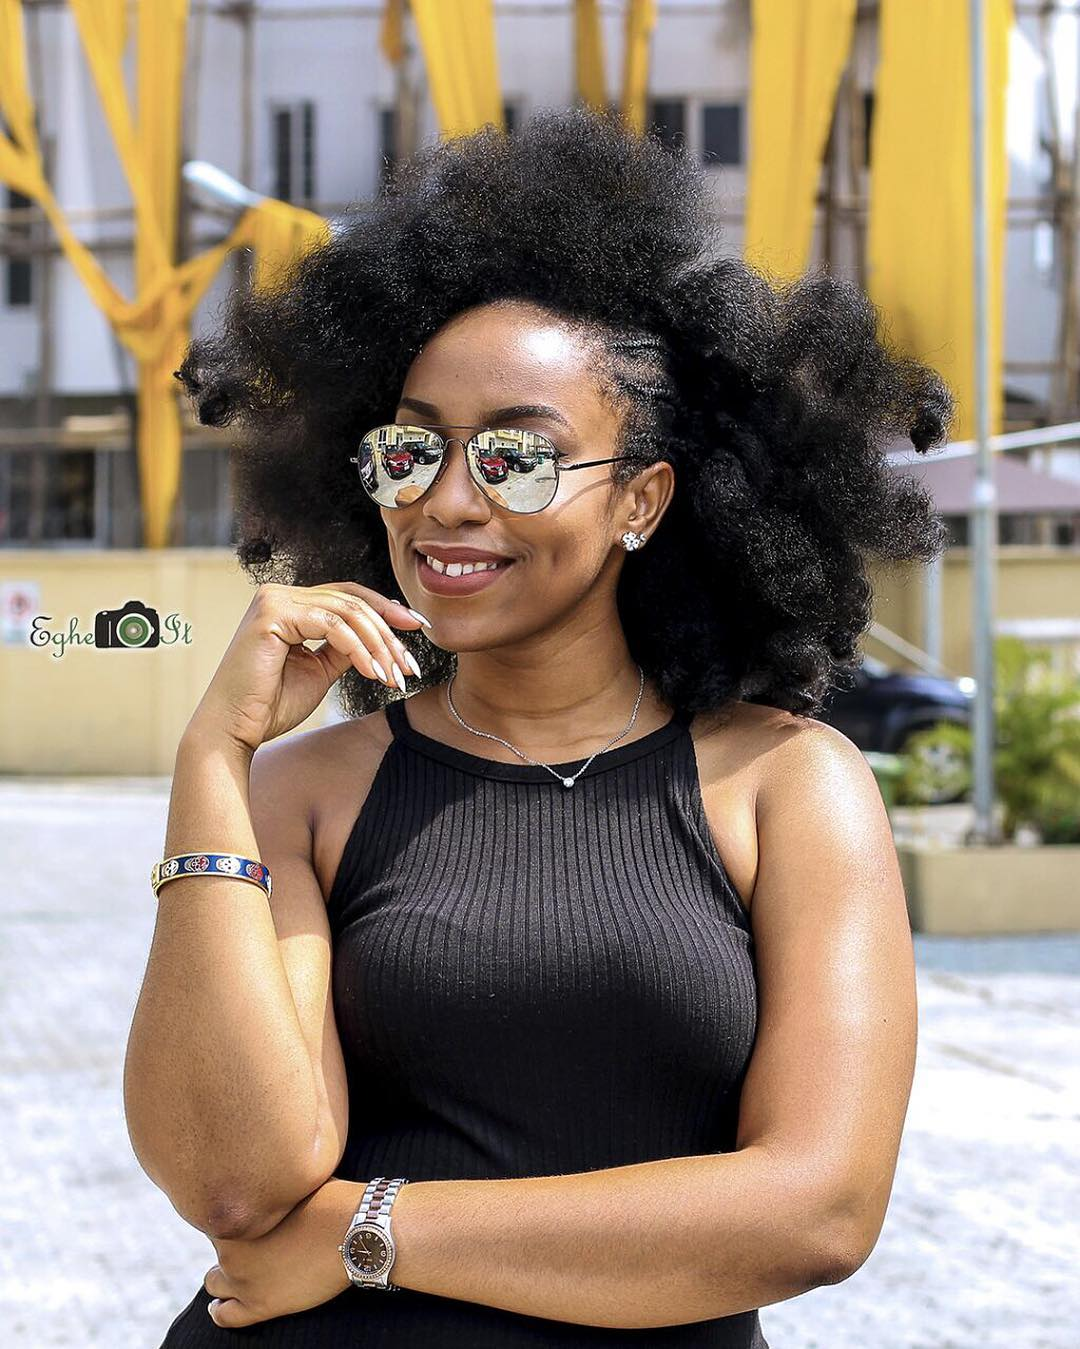 free online dating in lagos The award-winning christian dating site join free to meet like-minded christians christian connection is a christian dating site owned and run by christians dating back to september 2000.